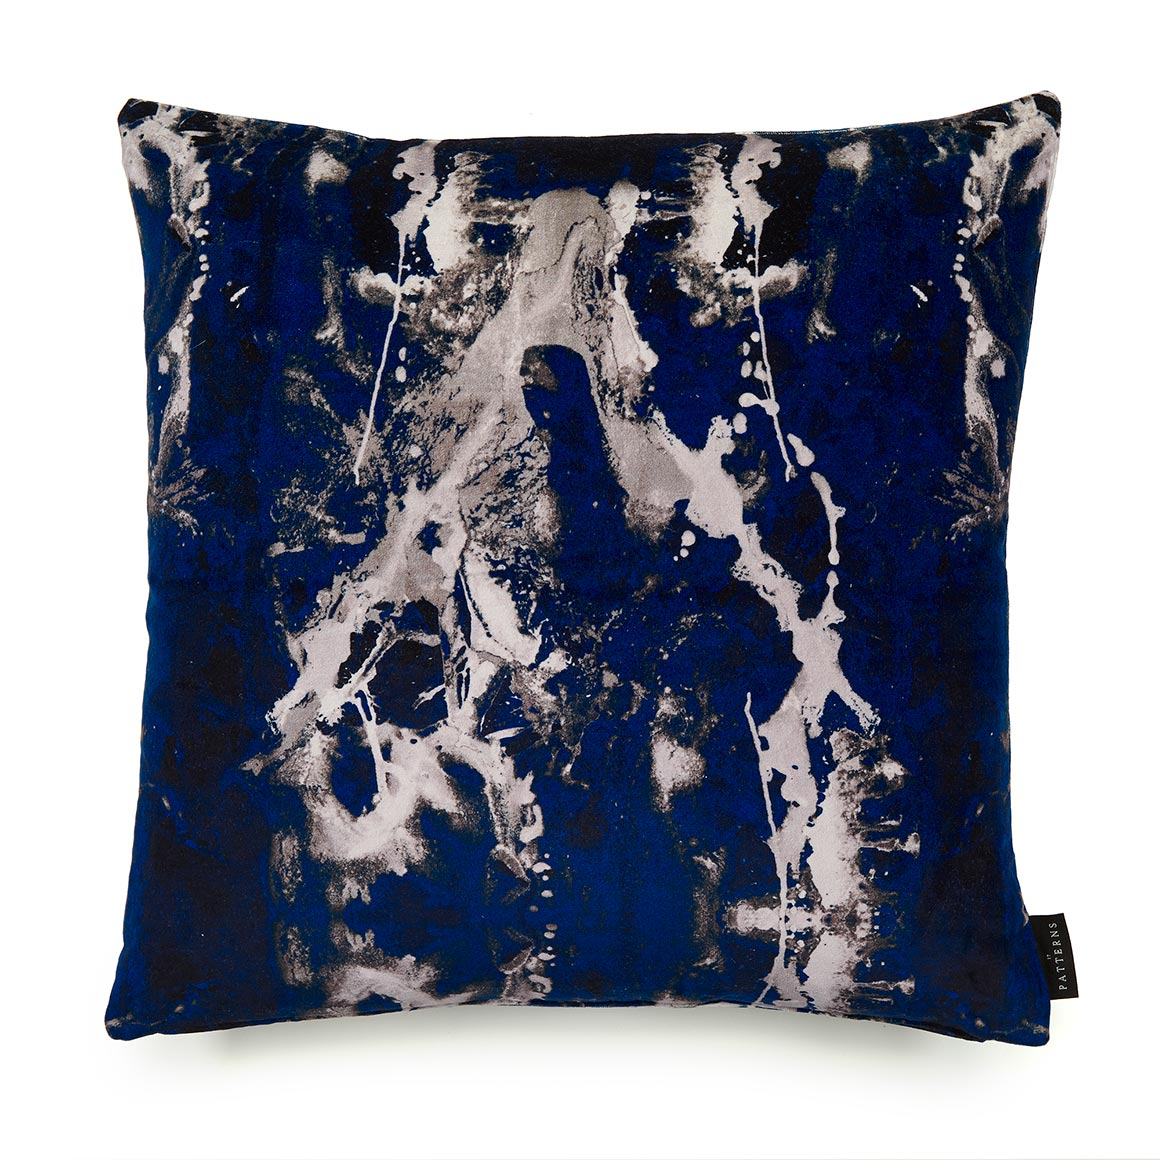 Blue Velvet Cushion Blotto Navy Cotton Velvet Cushion By 17 Patterns